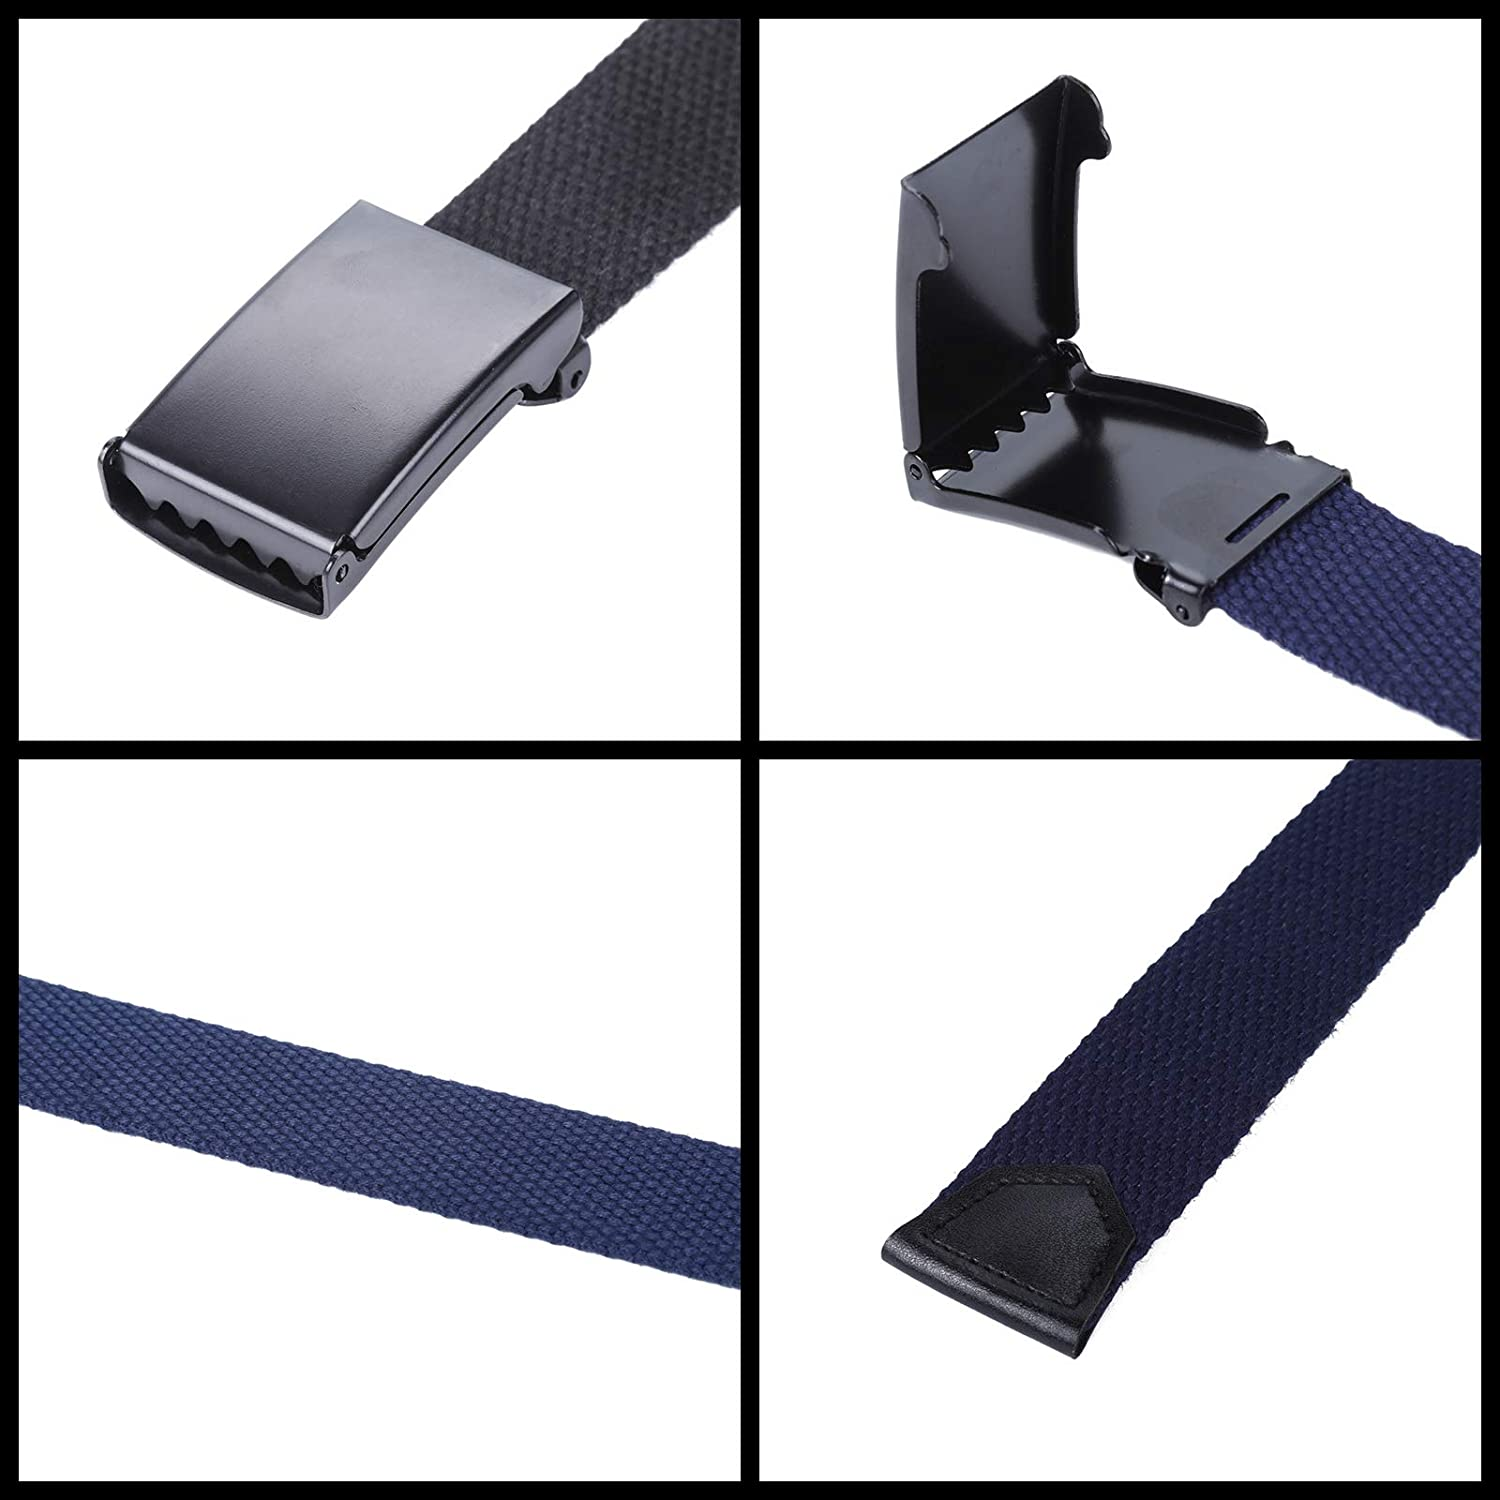 Cut To Fit Adjustable Belts 2Pcs Navy Blue, 35 90CM 2Pack Uniform Belt with Flip Top Buckle for Kids Boys Girls Boys Mans Canvas Web Belts